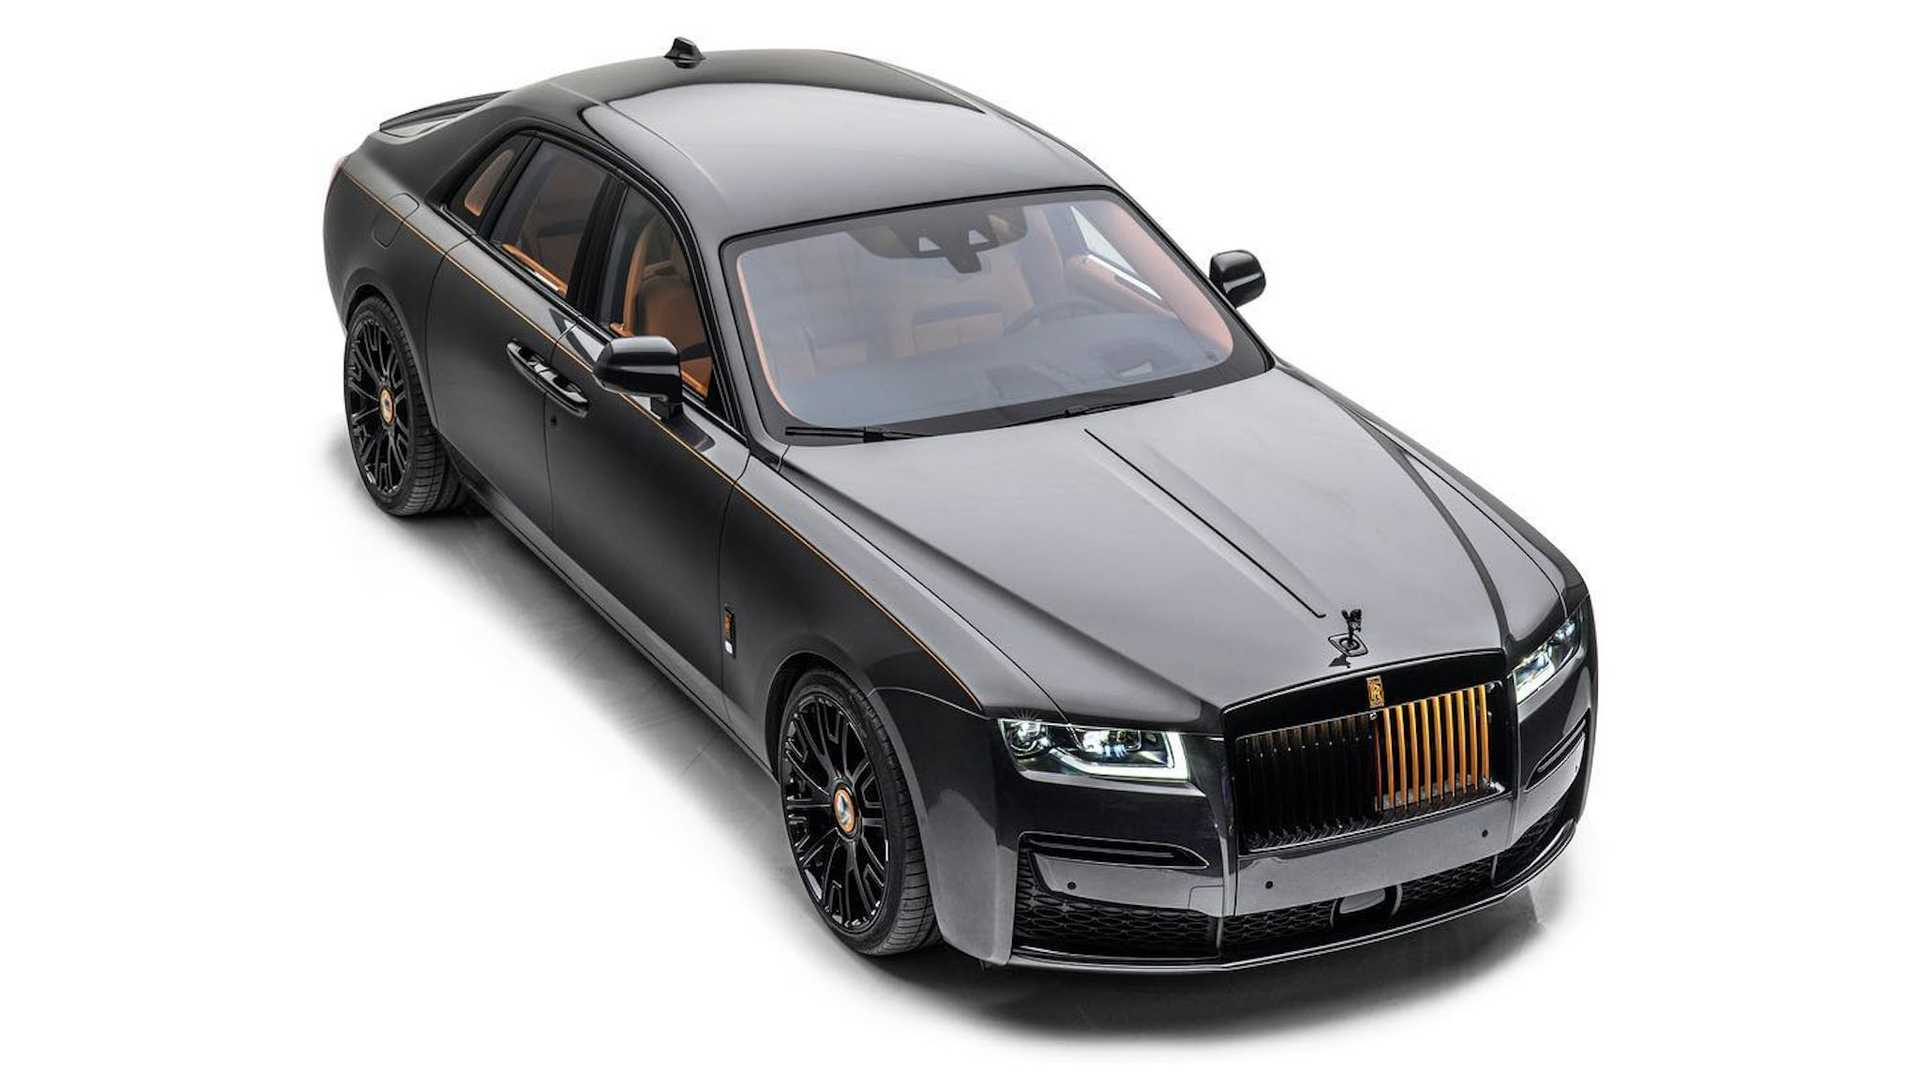 ghost2021mansory-cafeautovn-1